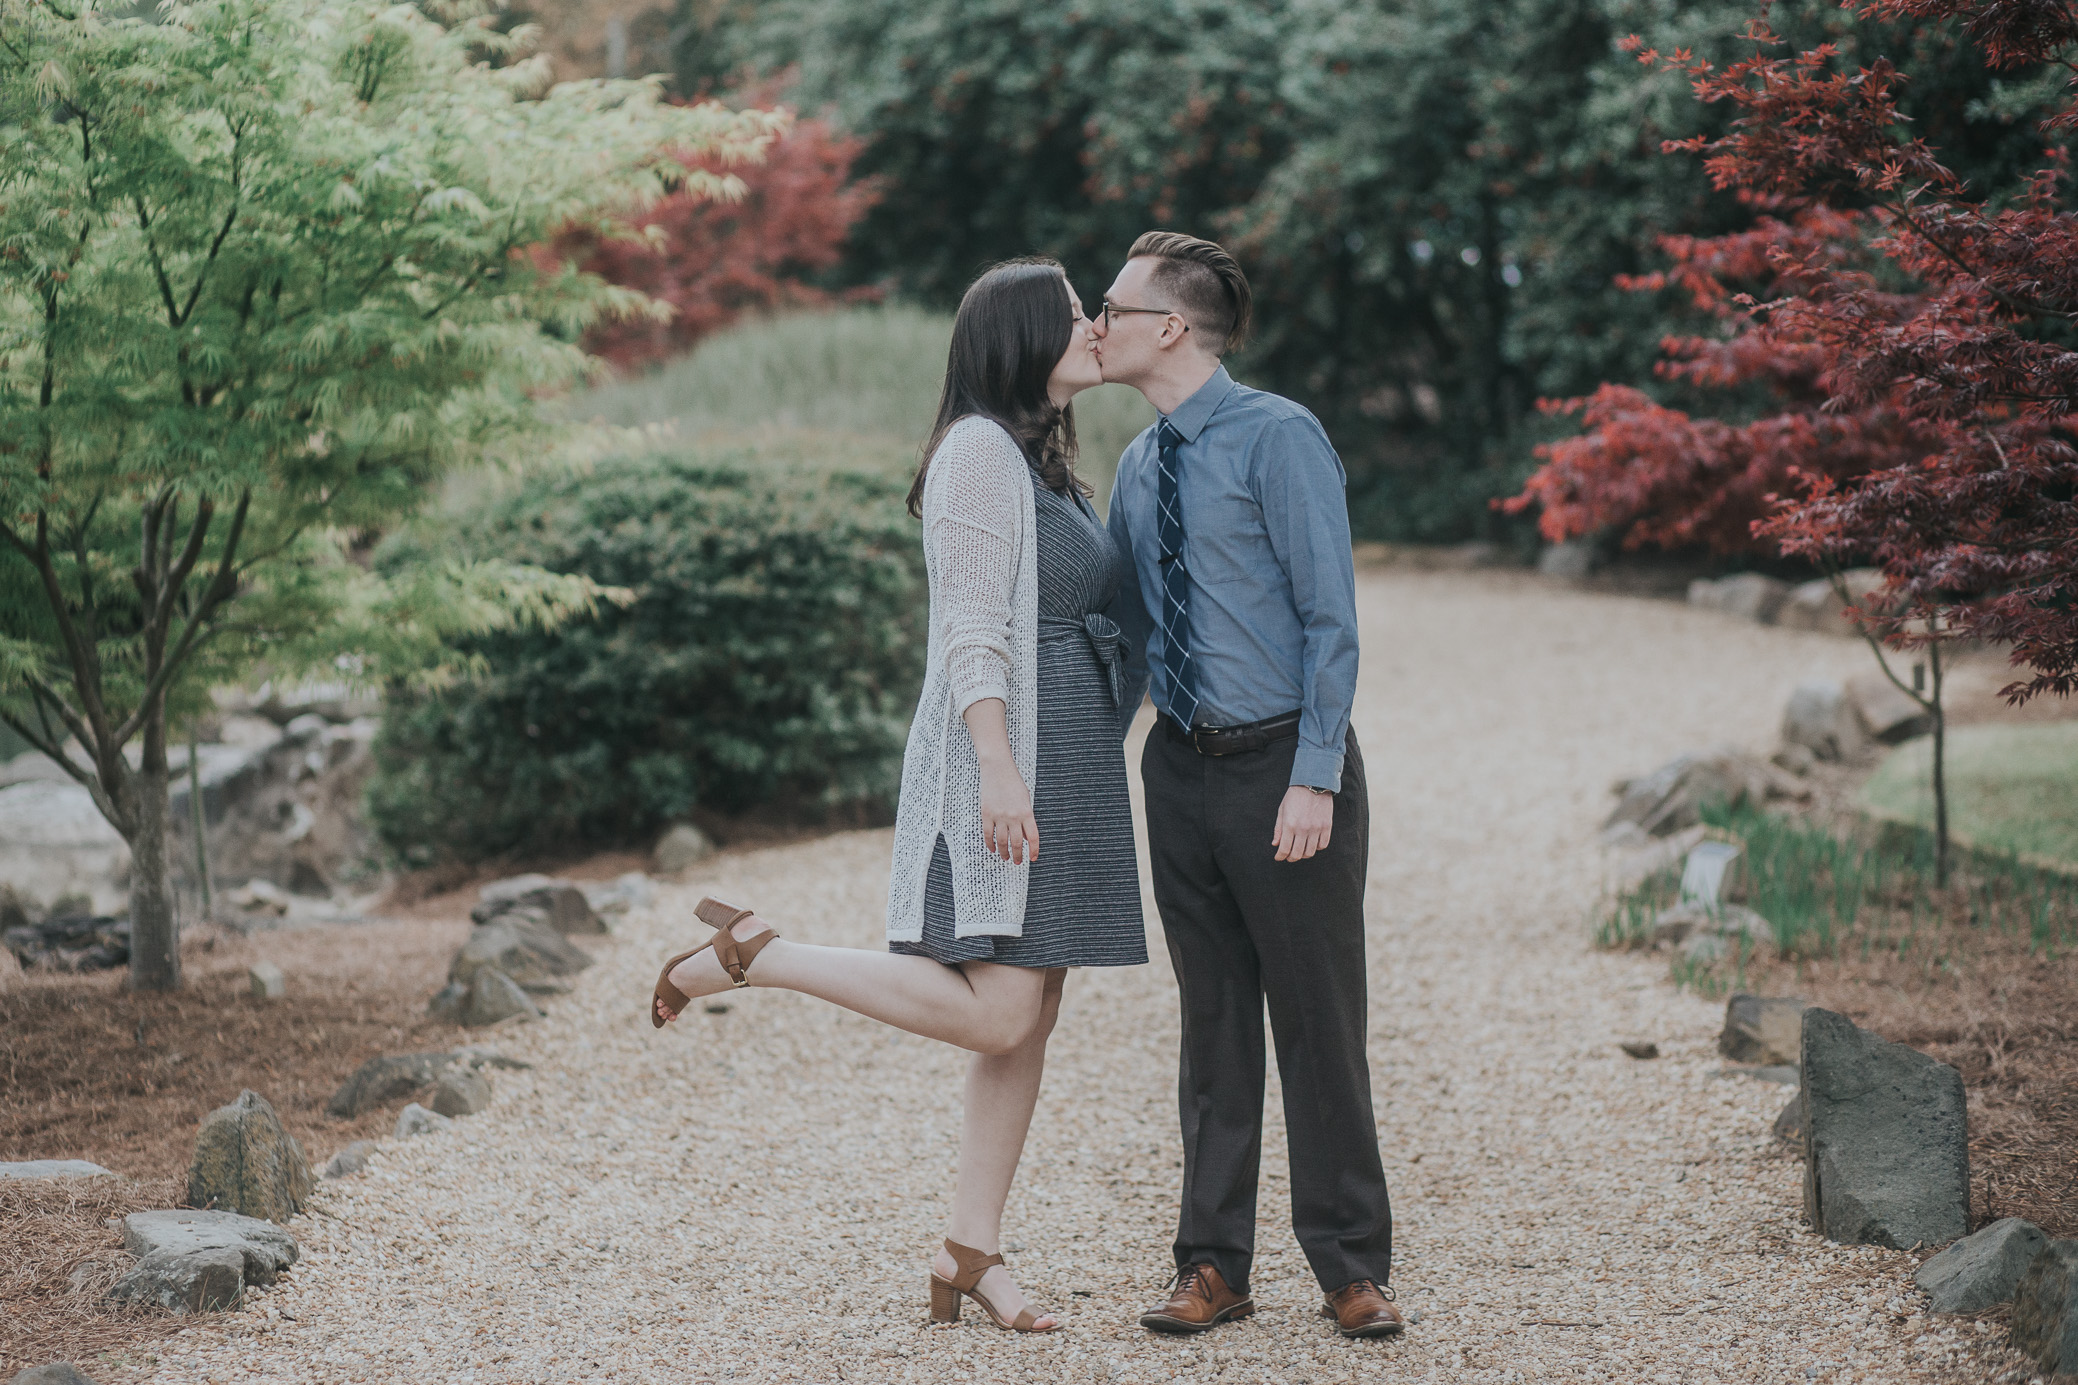 Birmingham Alabama engagement photography at the Birmingham Botanical Gardens by wedding photographer David A. Smith of DSmithImages Wedding Photography, Portraits, and Events